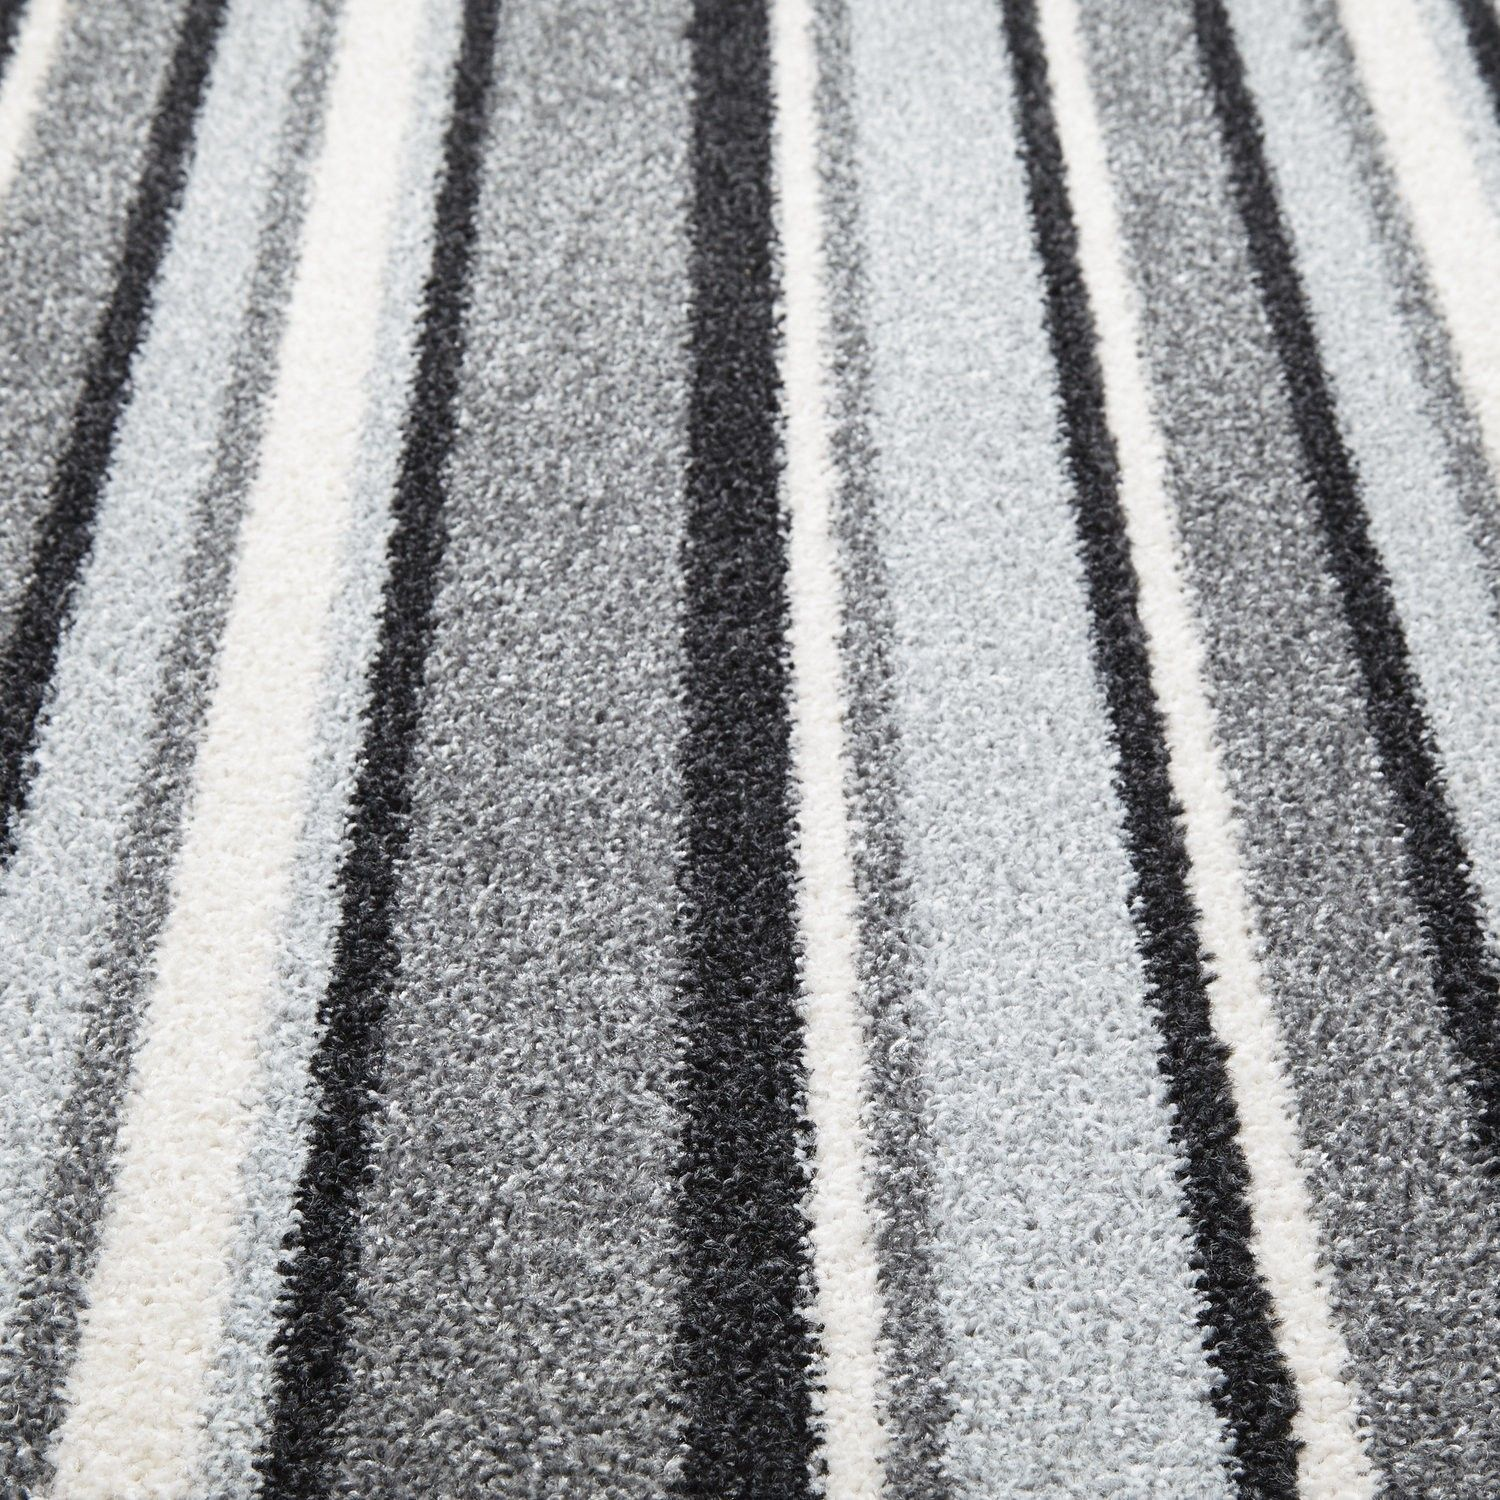 striped carpets Be bold with your home interior: introduce a dynamic striped carpet into your home for maximum impact. Our vibrant collection of captivating and colourful striped carpets is a fantastic way to inject personality into your lounge, bedroom or stairs without compromising everyday practicality.